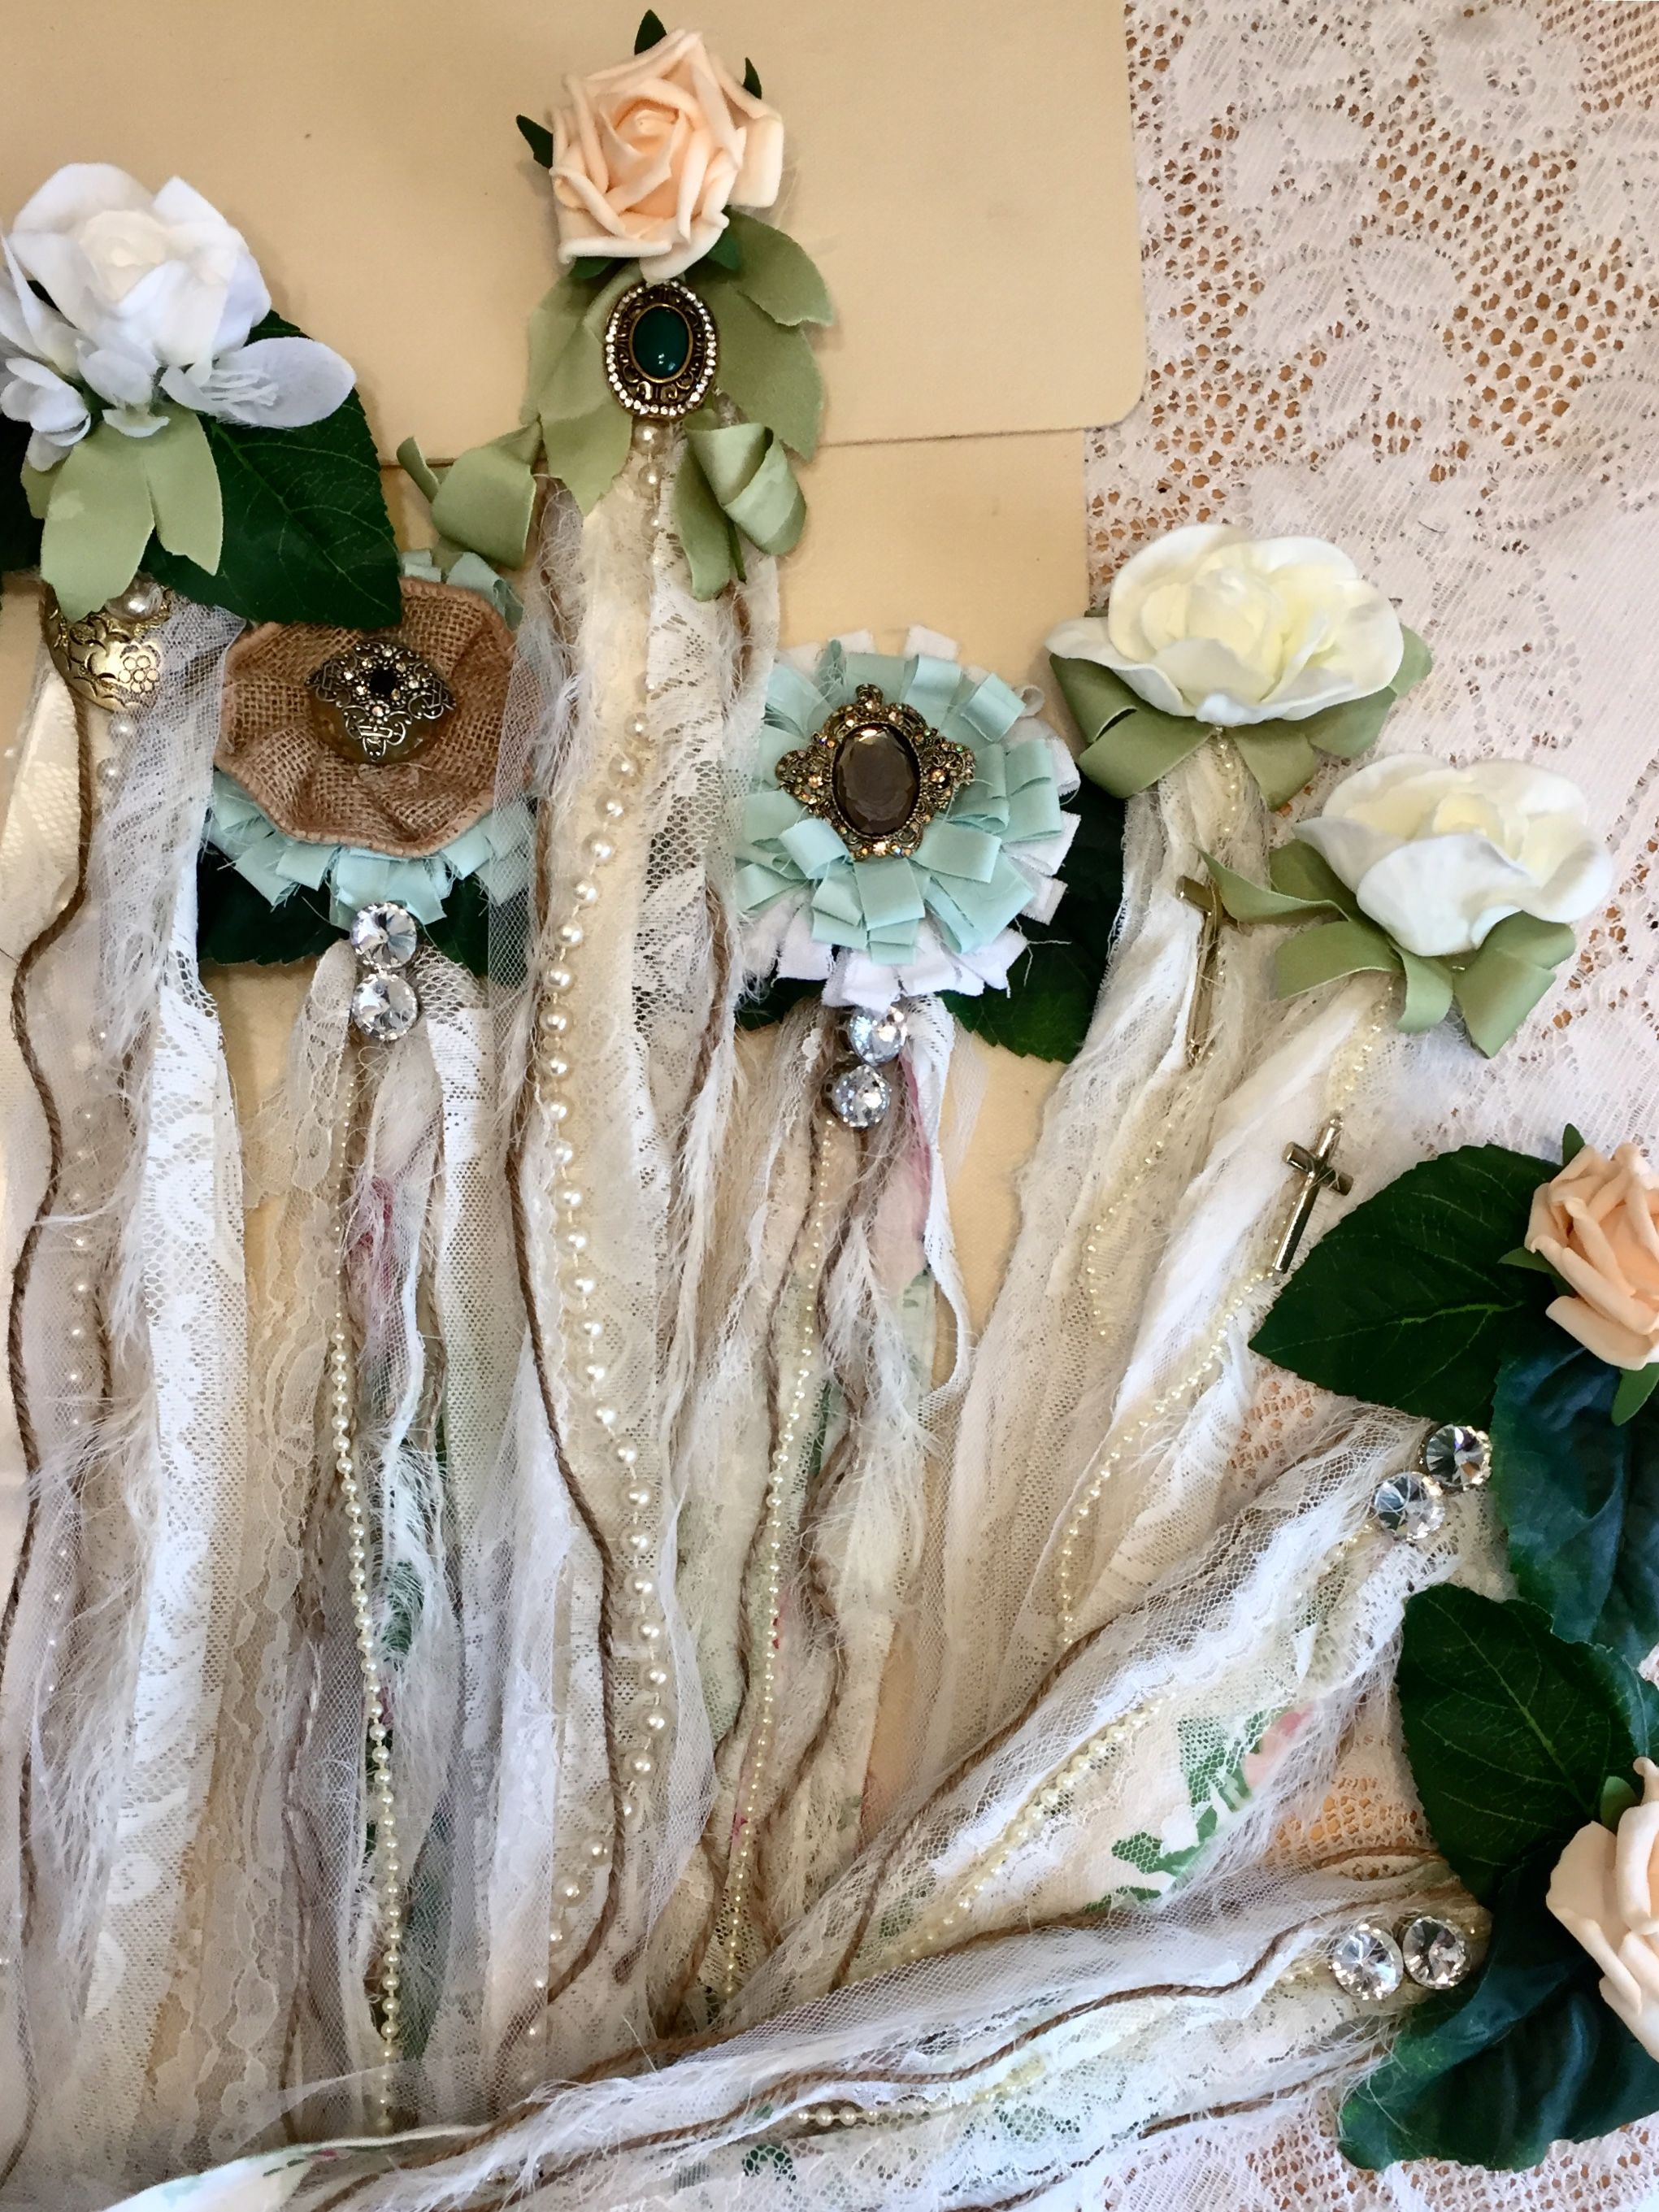 Pin by Laurie Garrison on HOPES for Dan&Carolyn's Big Day